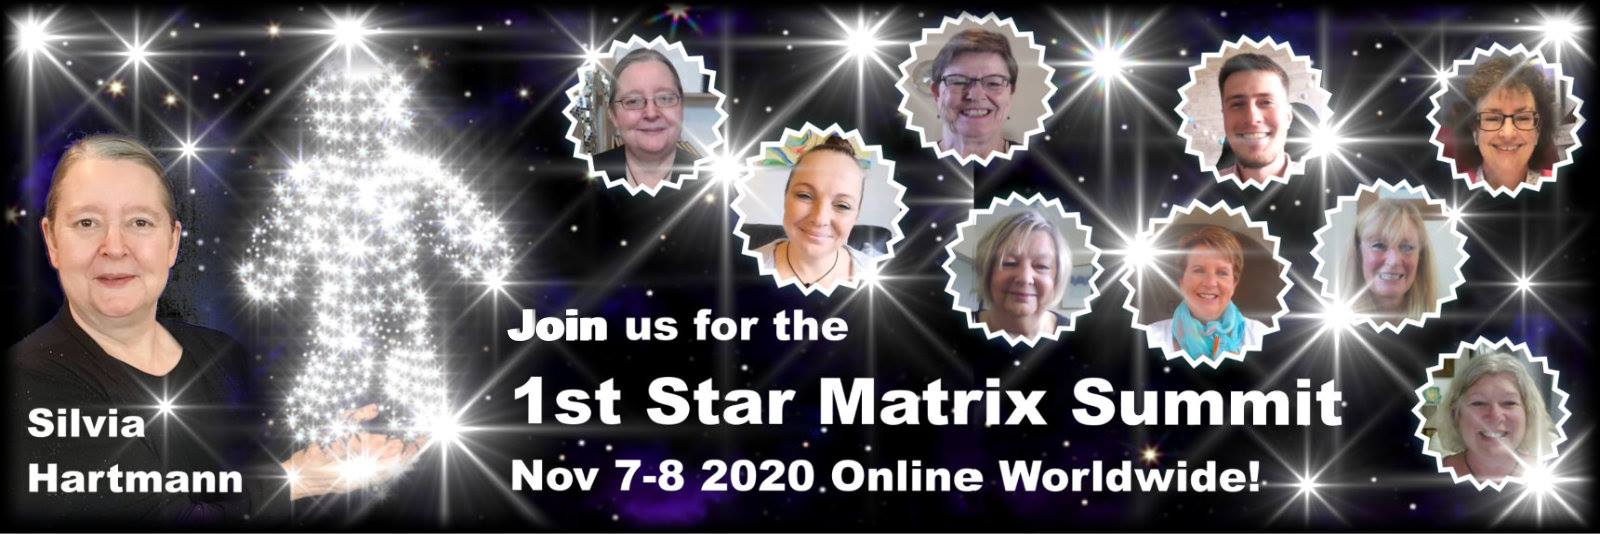 Welcome to the Star Matrix Summit!